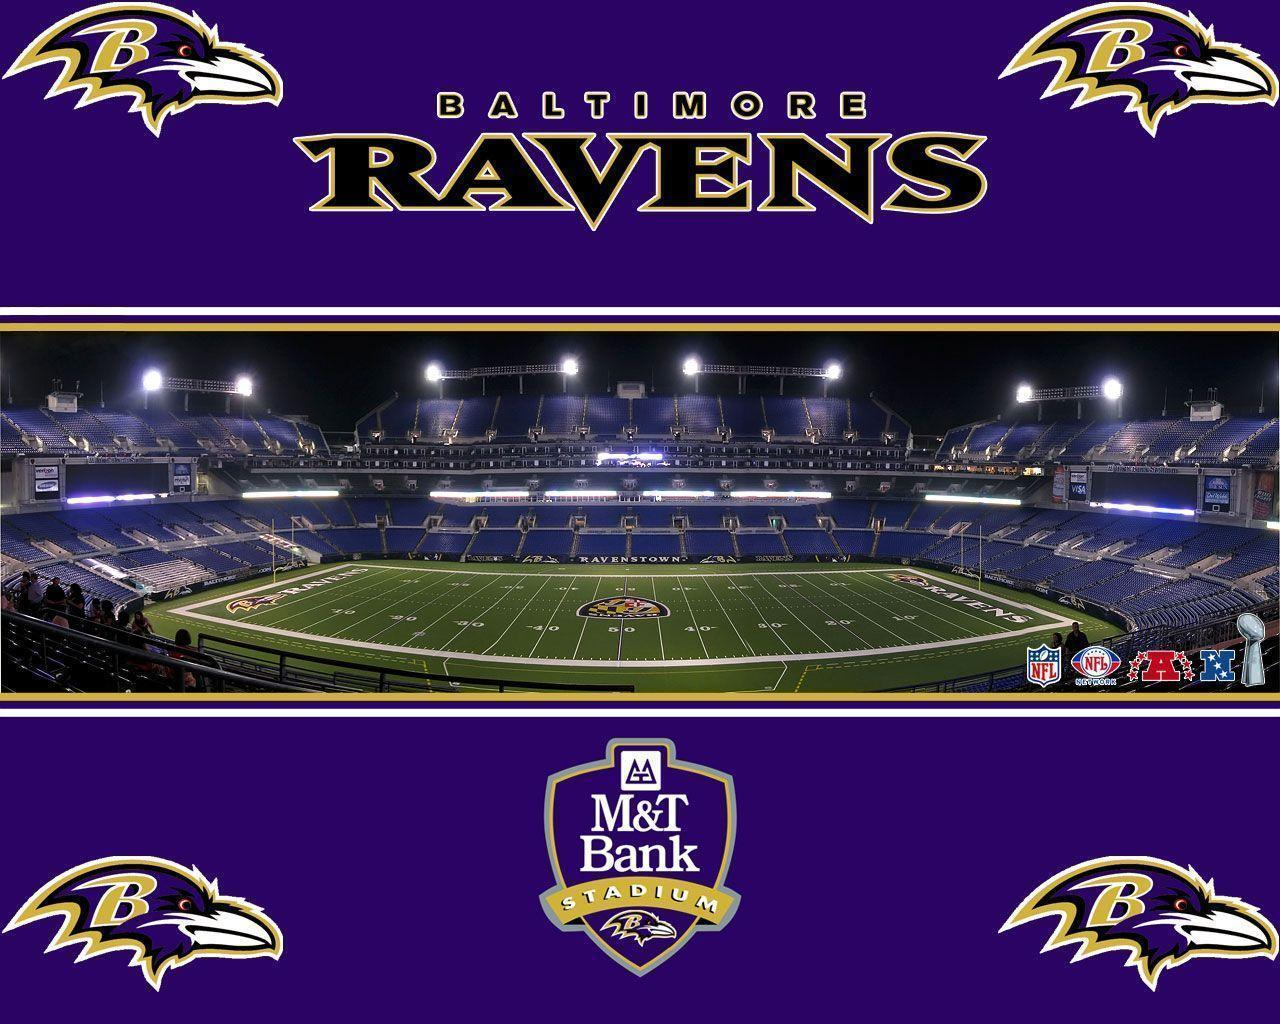 Baltimore Ravens Wallpaper Screensavers - WallpaperSafari